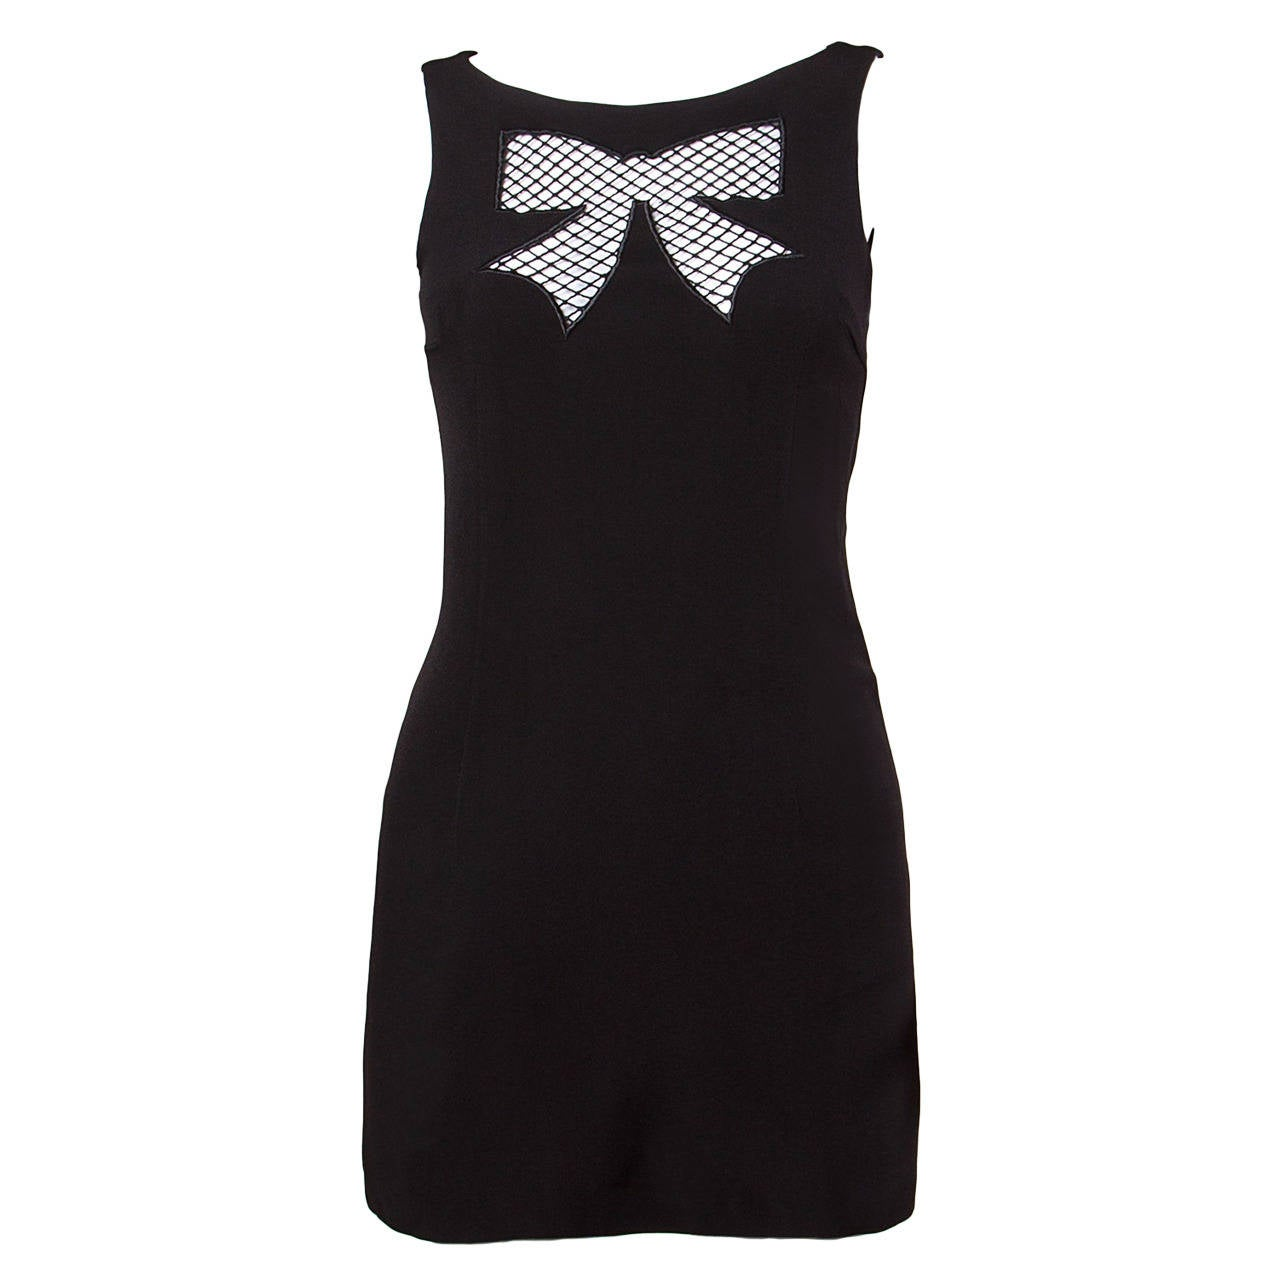 Moschino Vintage Black Cut Out Bow Tie Mini Dress, 1990s